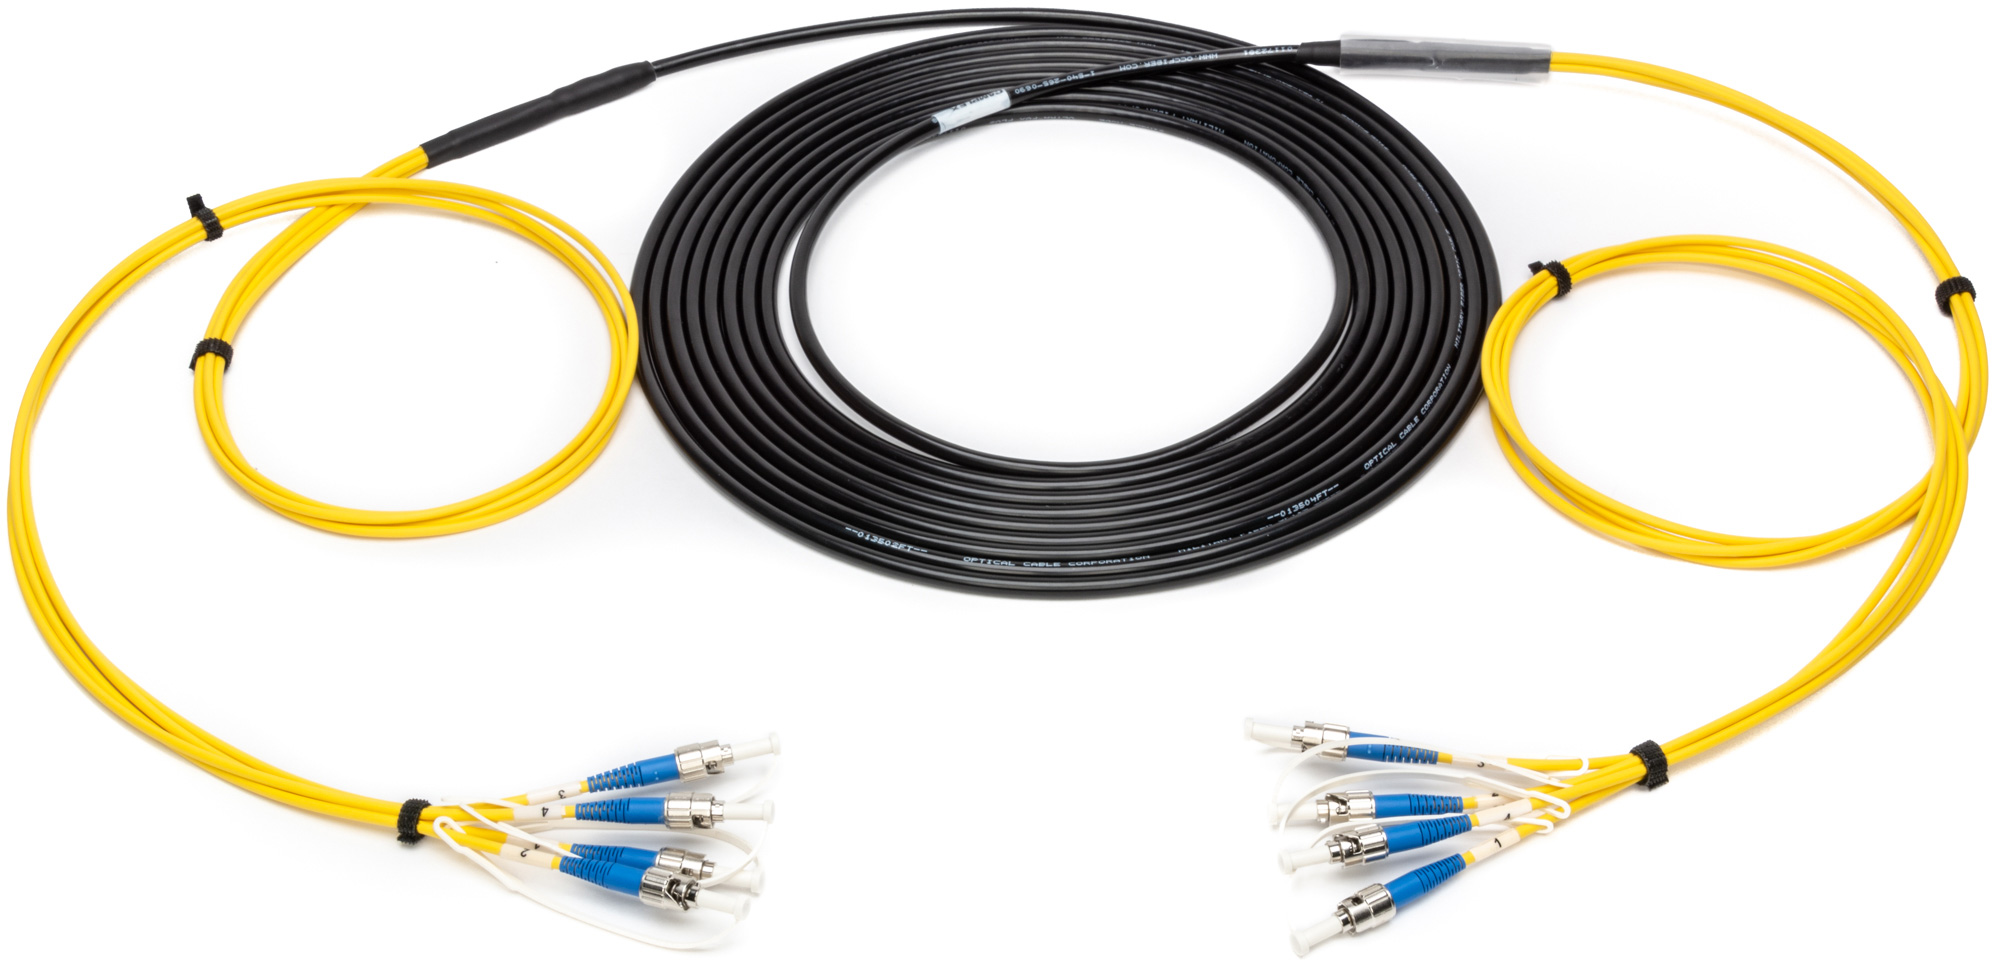 Camplex 4-Channel ST-Single Mode Tactical Fiber Optical Snake- 50 Foot